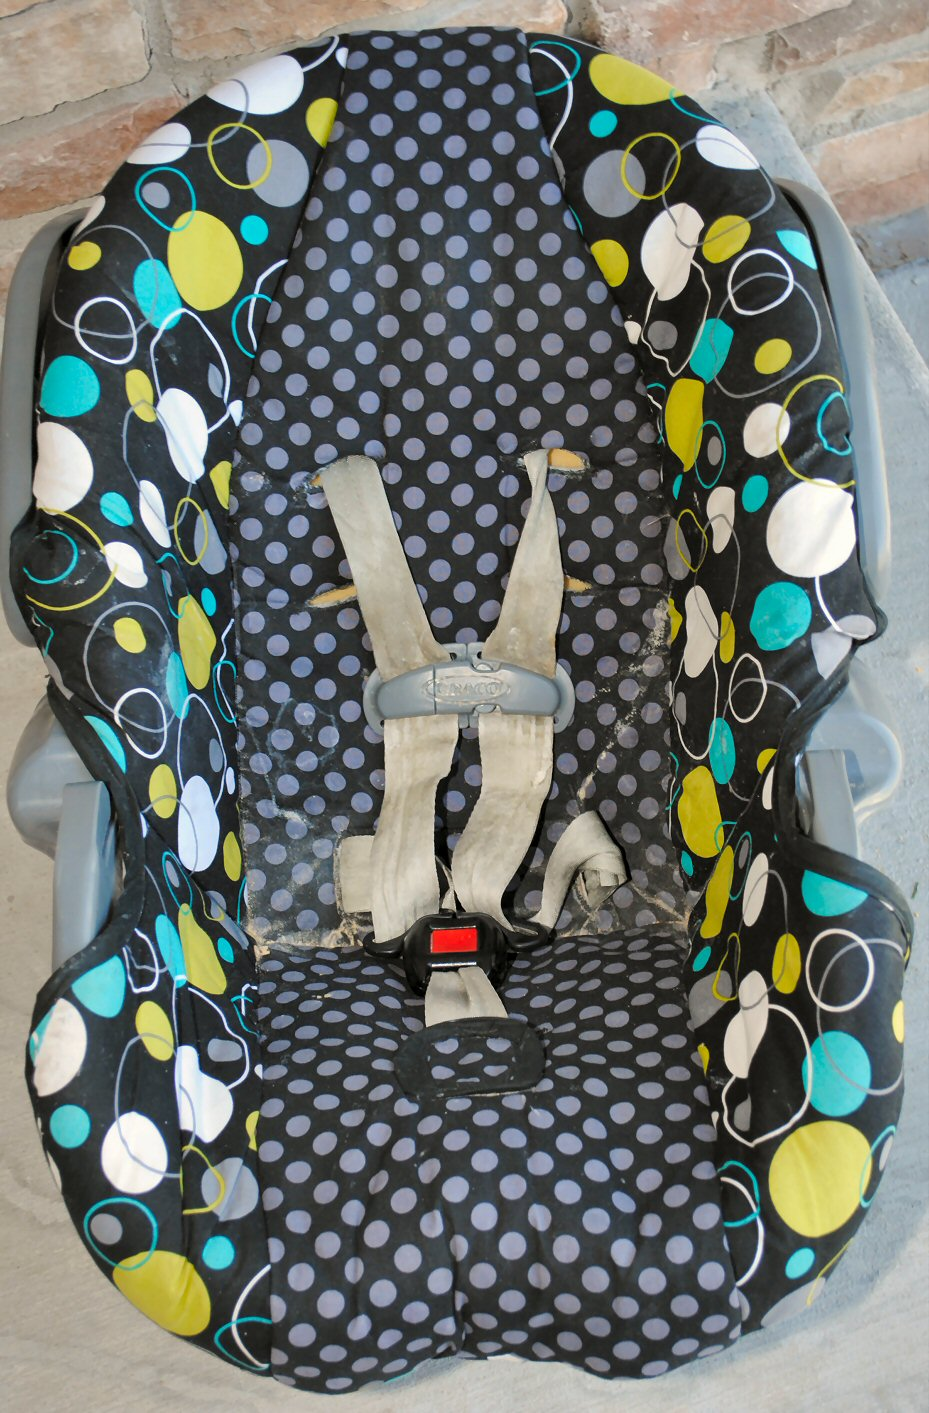 Infant Toddler Car Seat Cover Tutorial How To Cover A Baby Car Seat